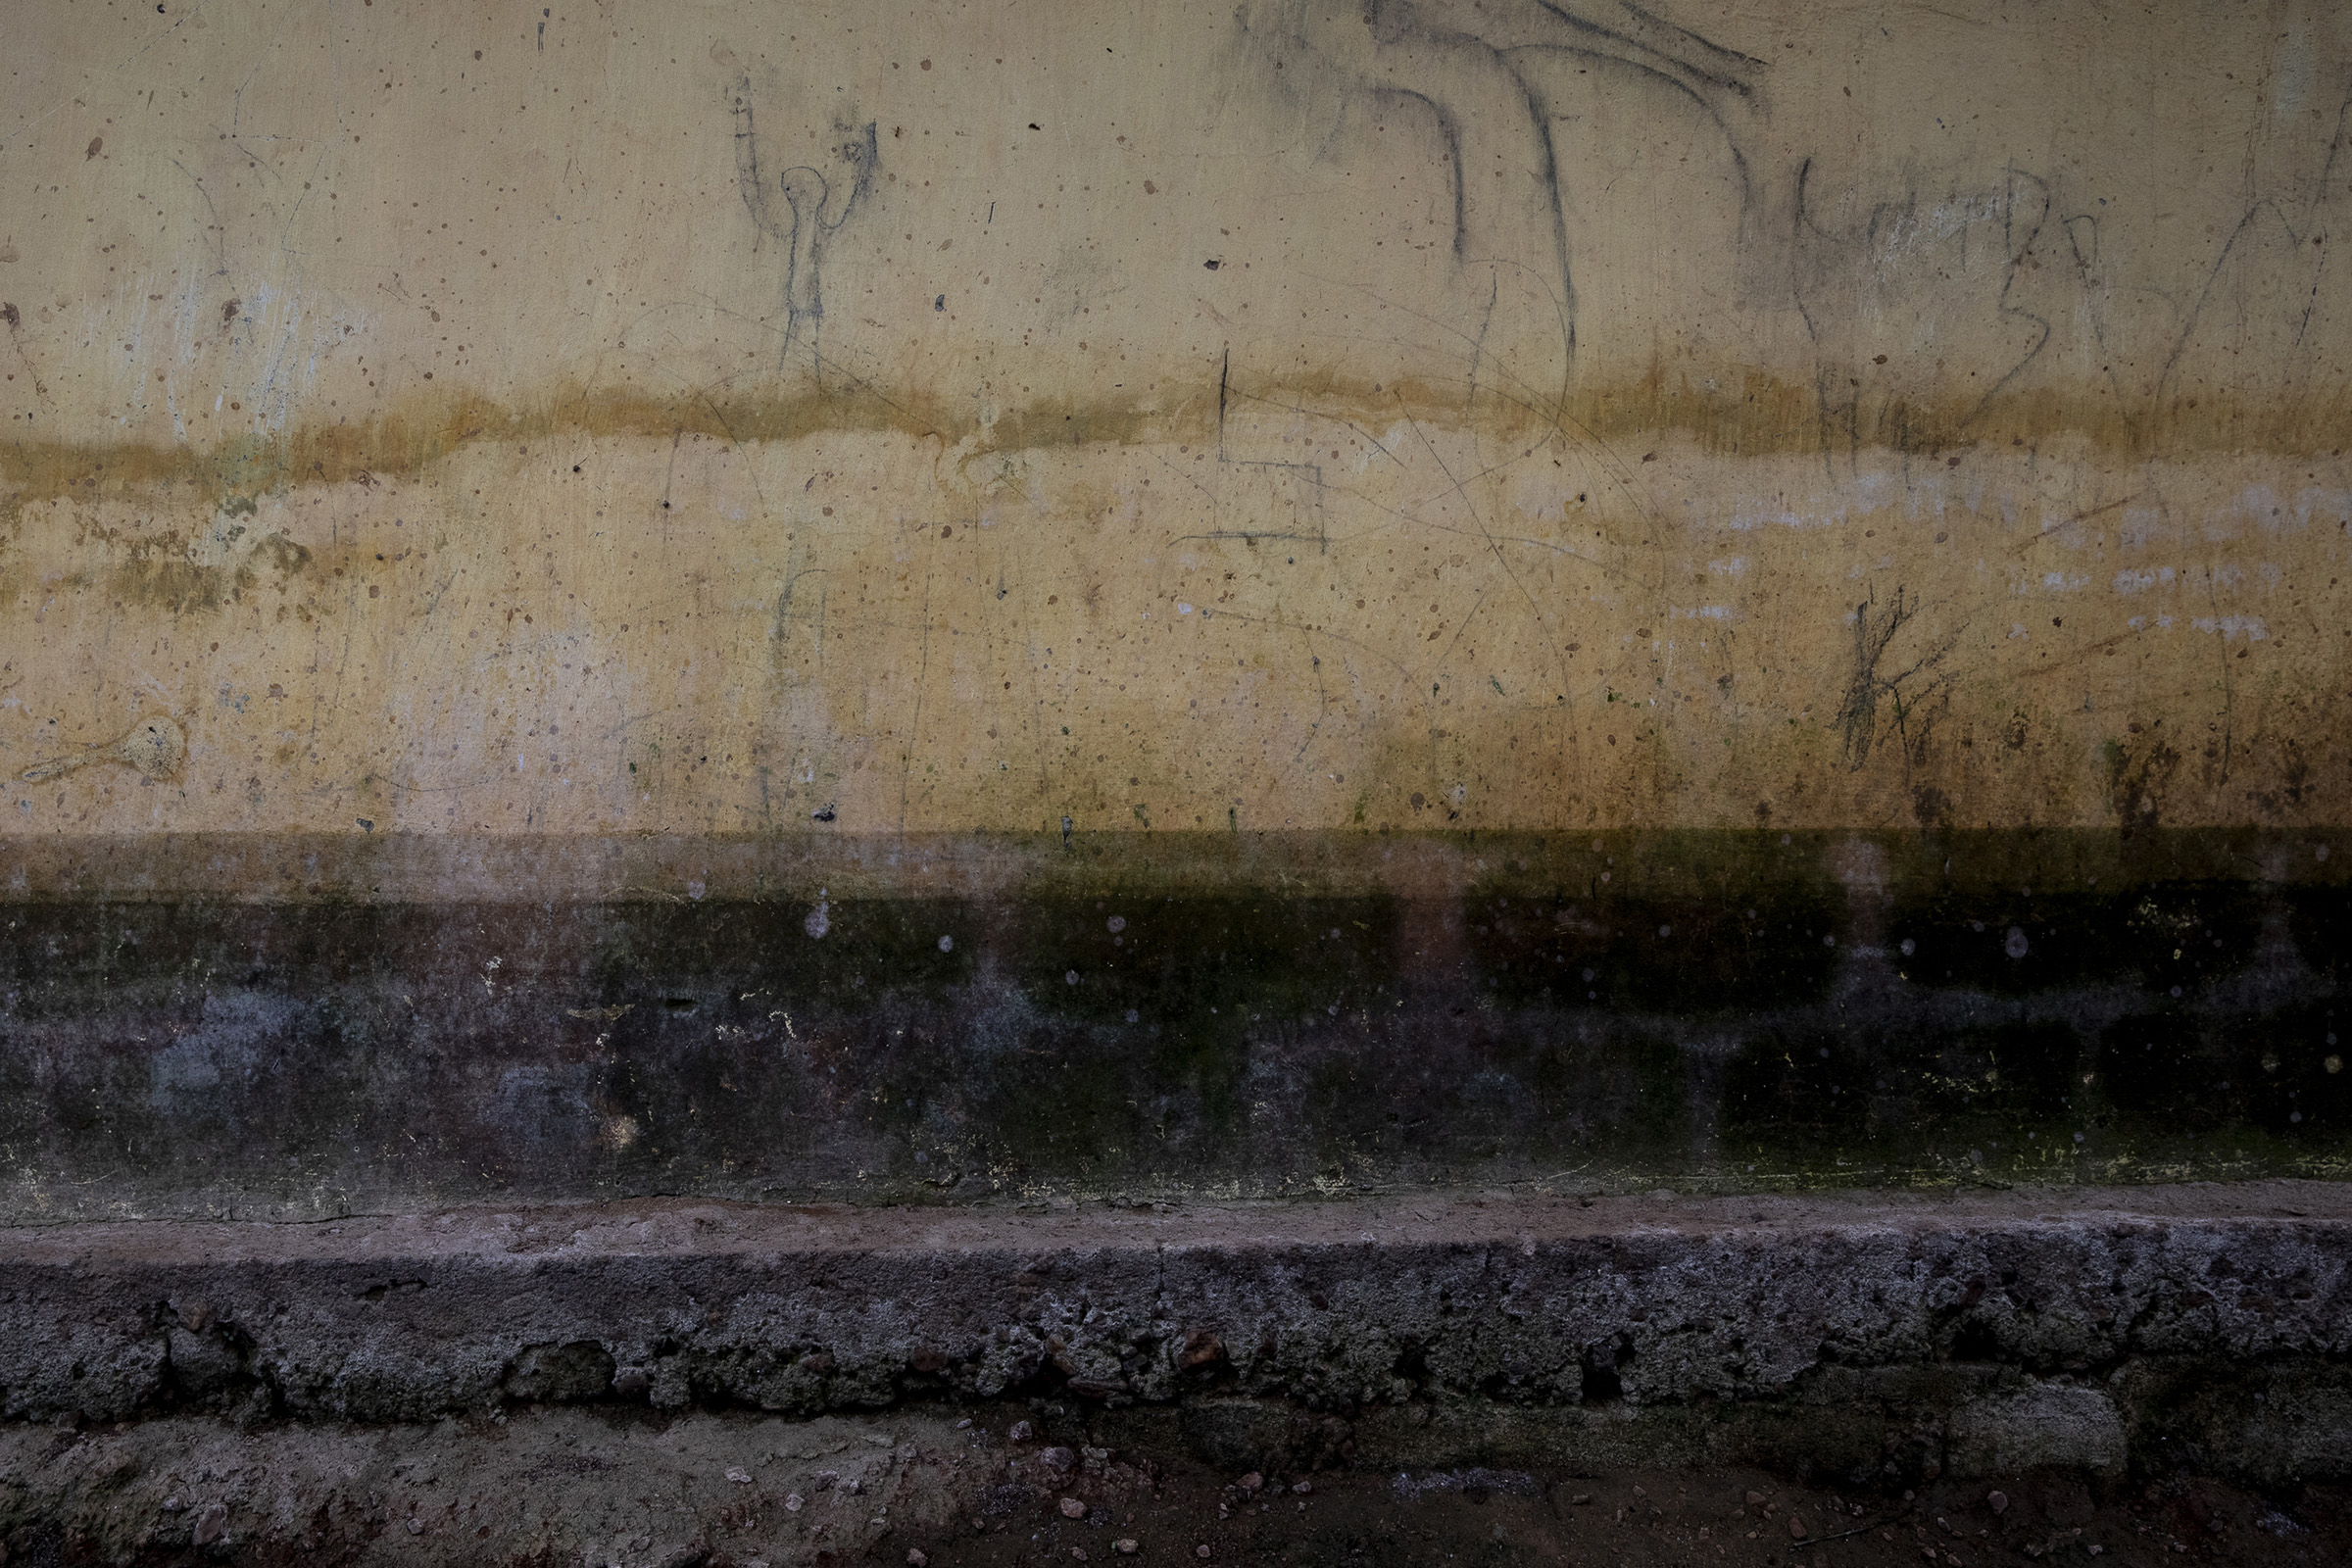 Water marks showing the flooding are seen in Georgine Kouangassam's neighbor's house on Nov.26, 2019. When the water rose in Kouangassam's house at night, everyone struggled to get out in the dark. Her granddaughter Angela, 3, drowned.